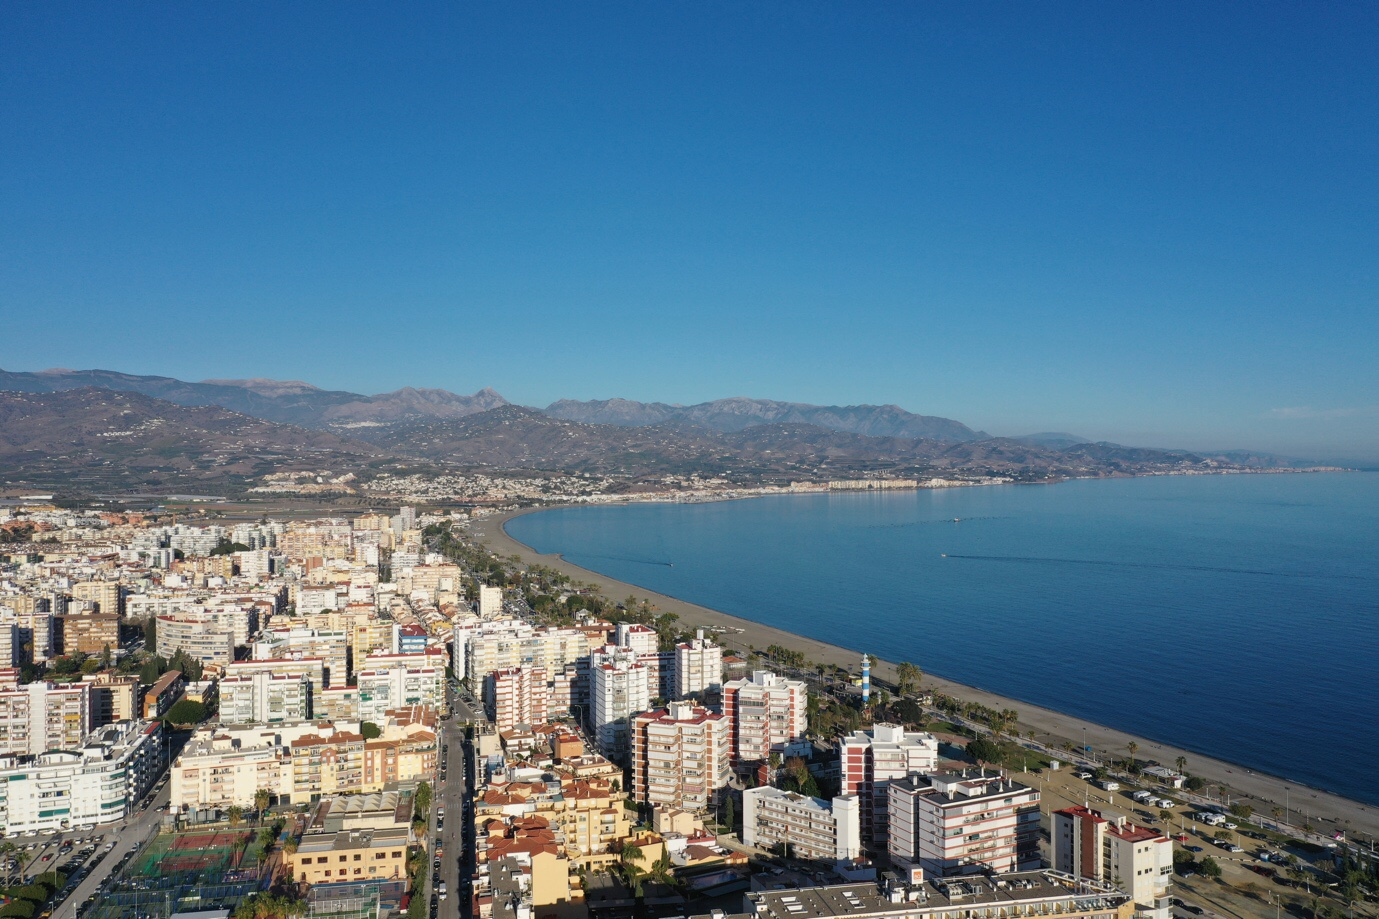 Drone aerial photography shows the scale of Torre Del Mar